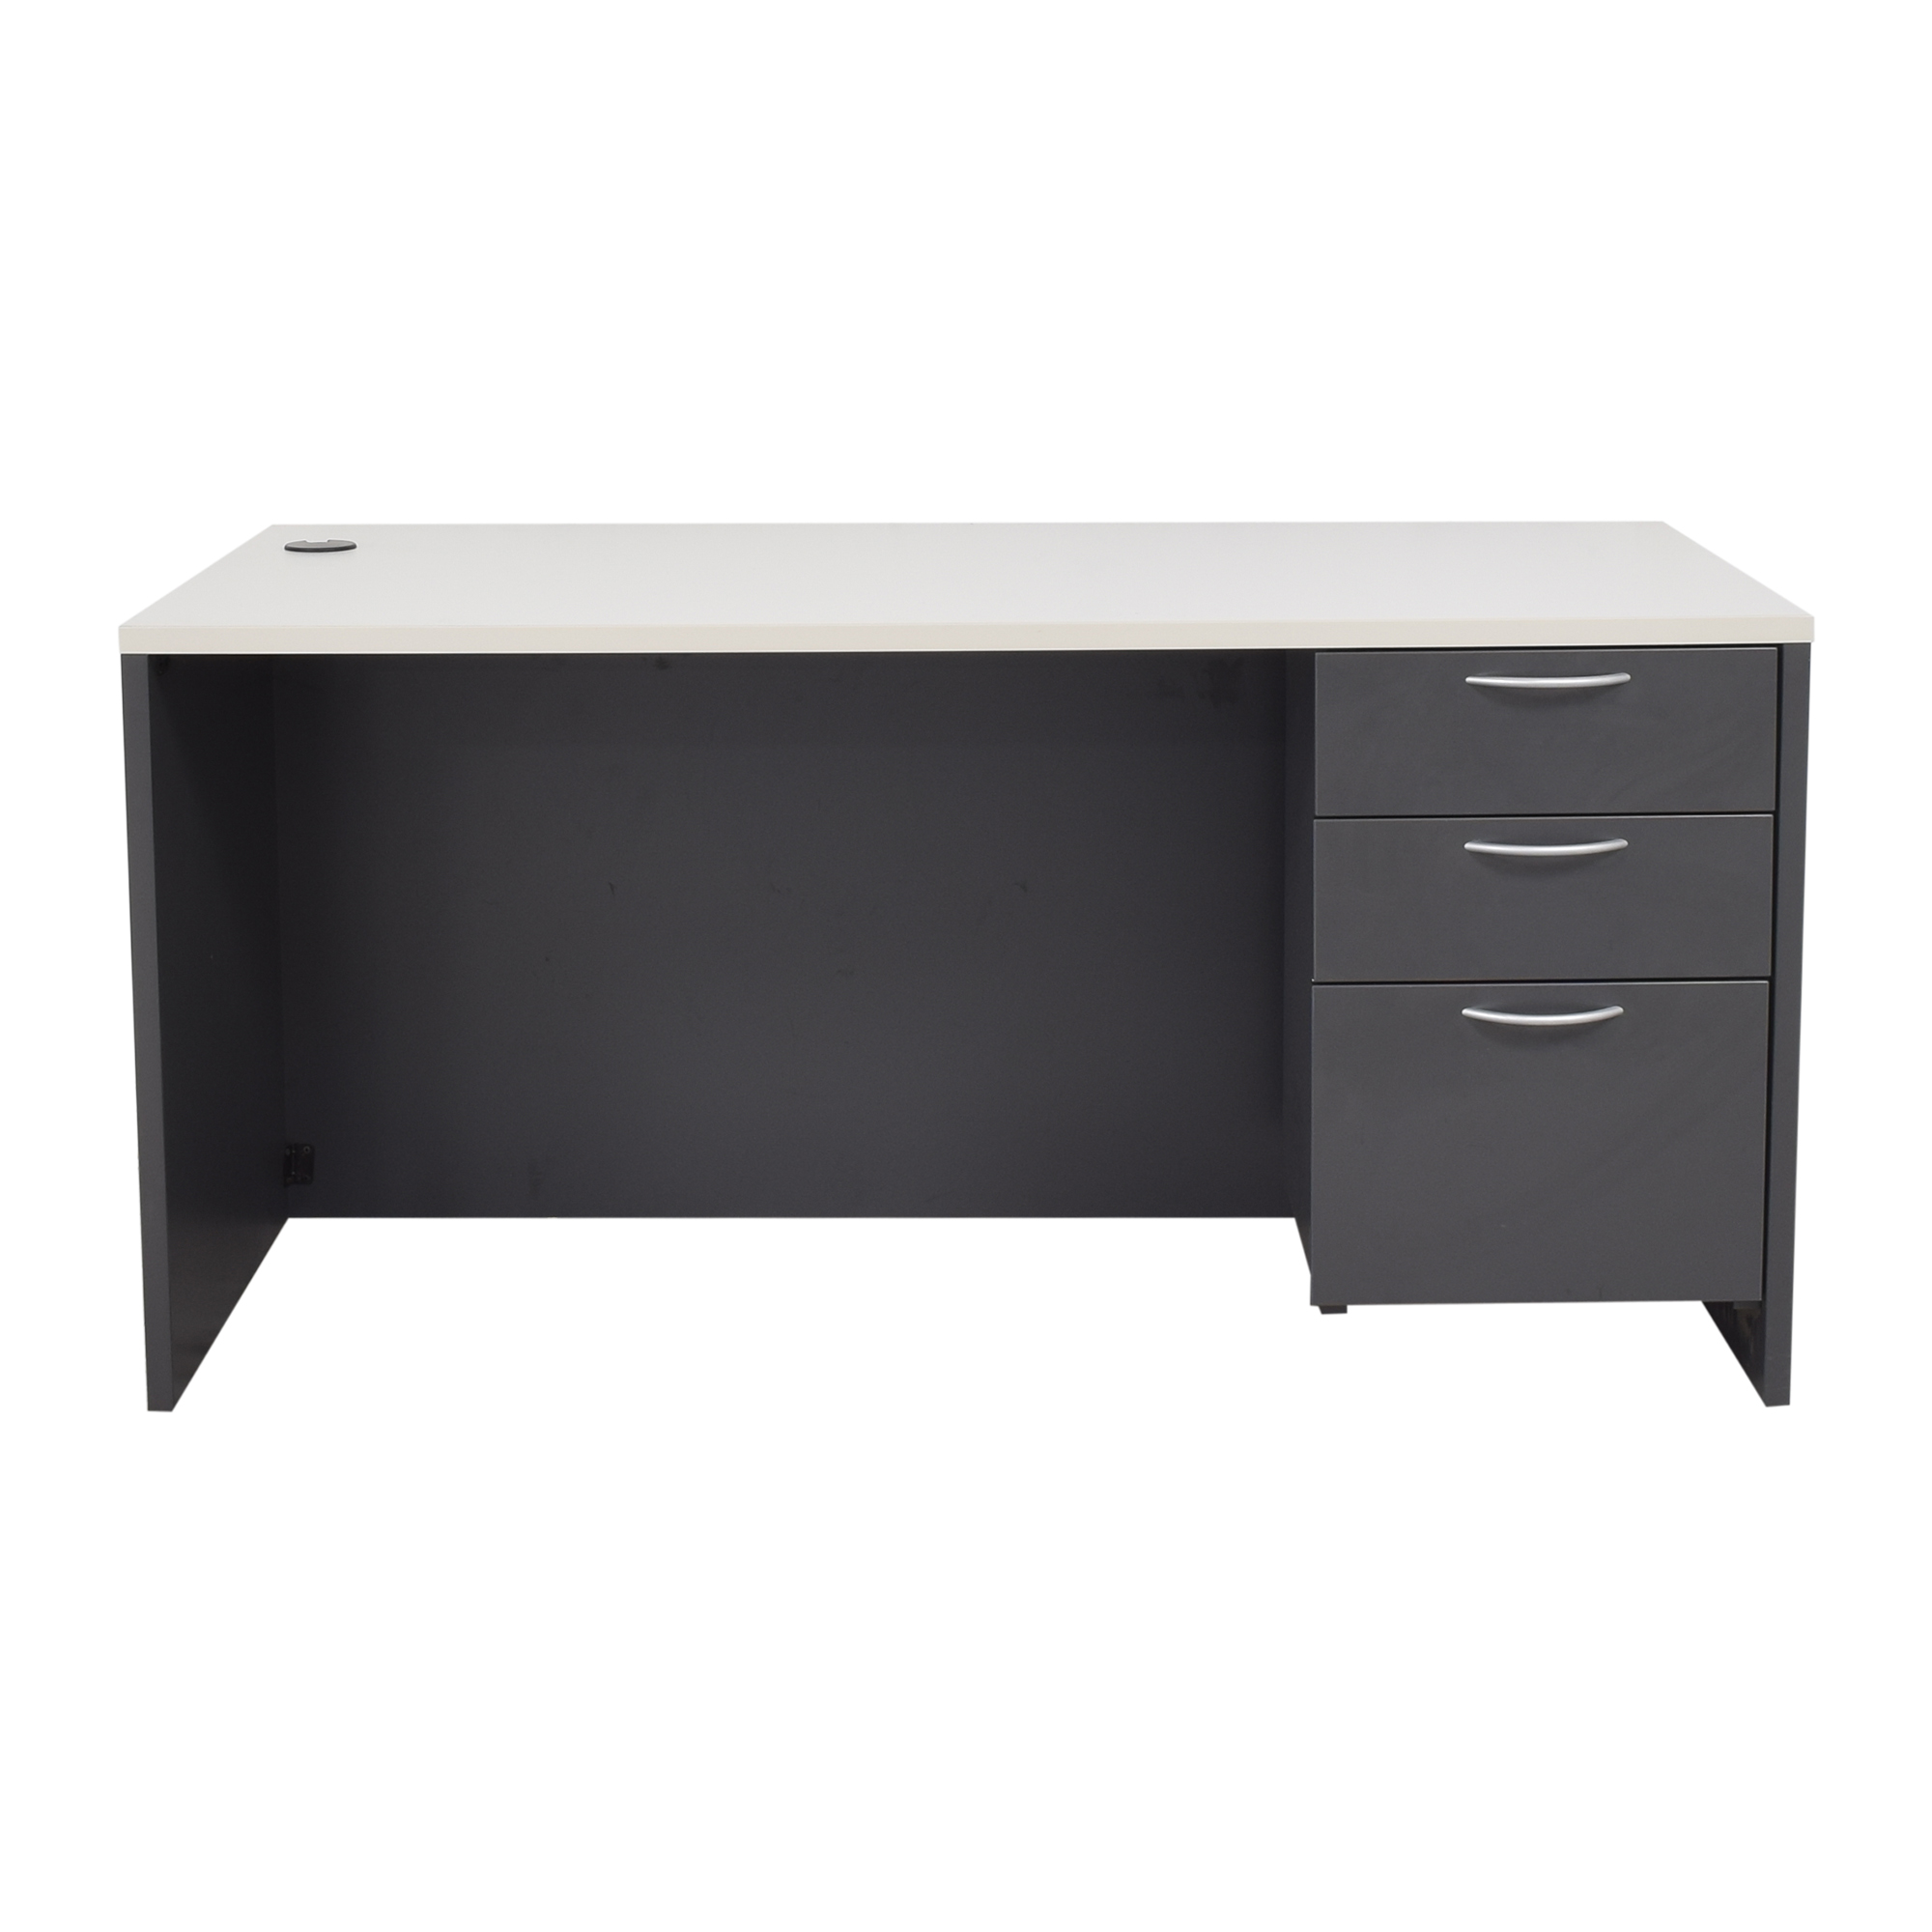 Office Furniture Heaven Office Furniture Heaven Three Drawer Desk second hand